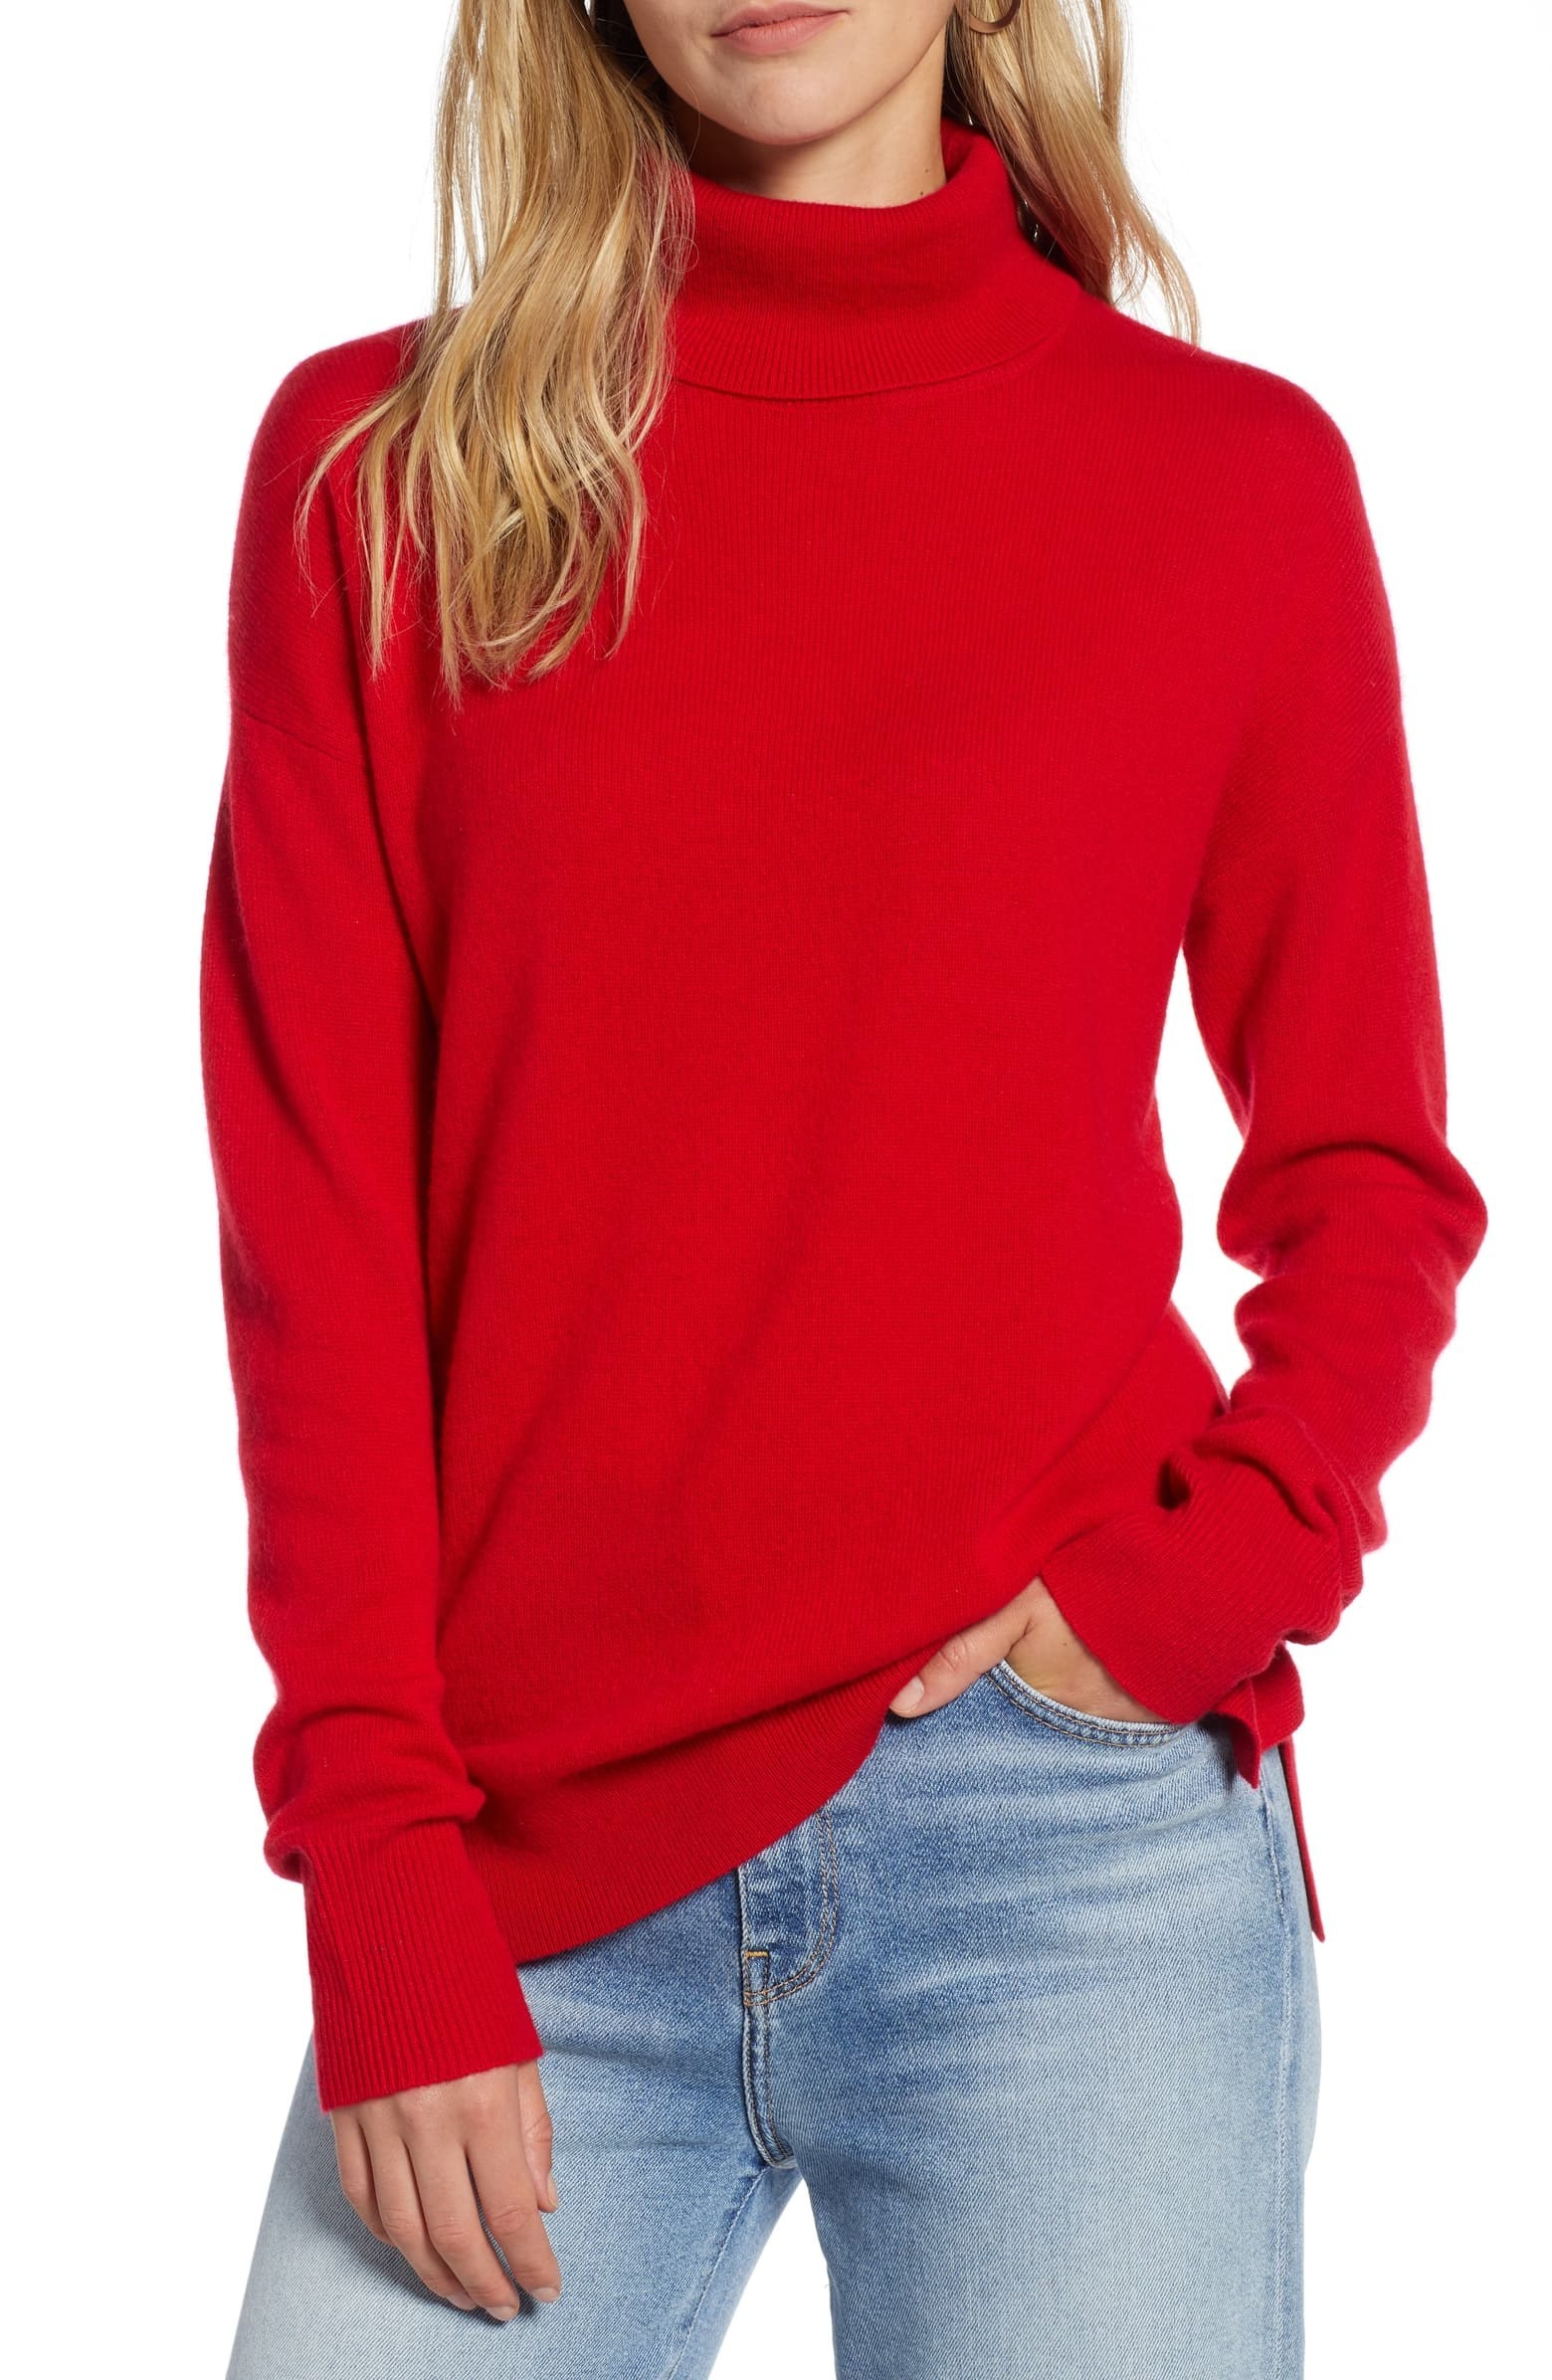 Model wearing the red turtleneck sweater